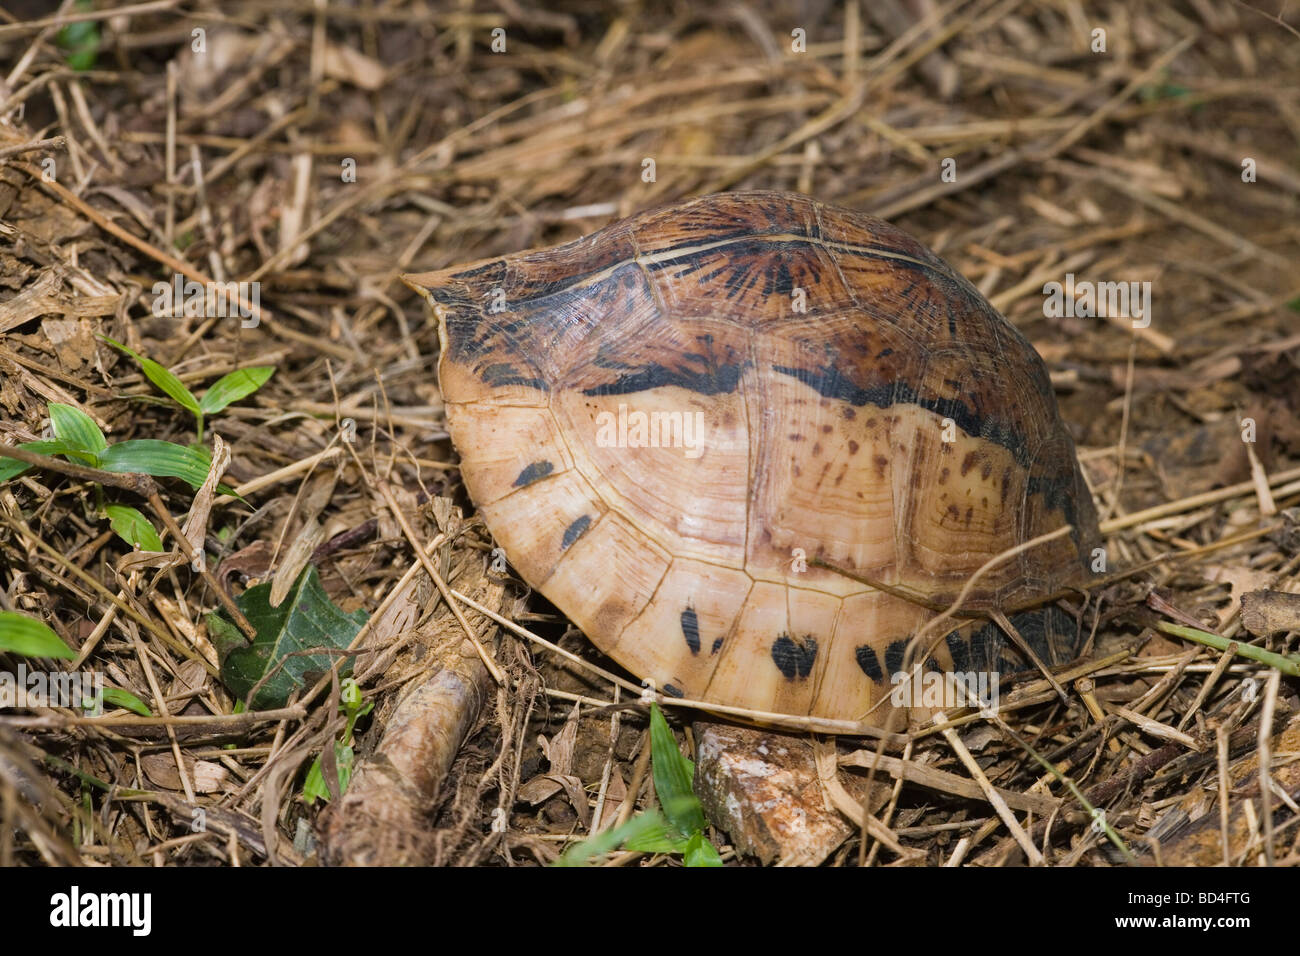 Indochinese Flowerback Box Turtle (Cuora galbinifrons). On the forest floor. Head and limbs withdrawn into the shell. - Stock Image